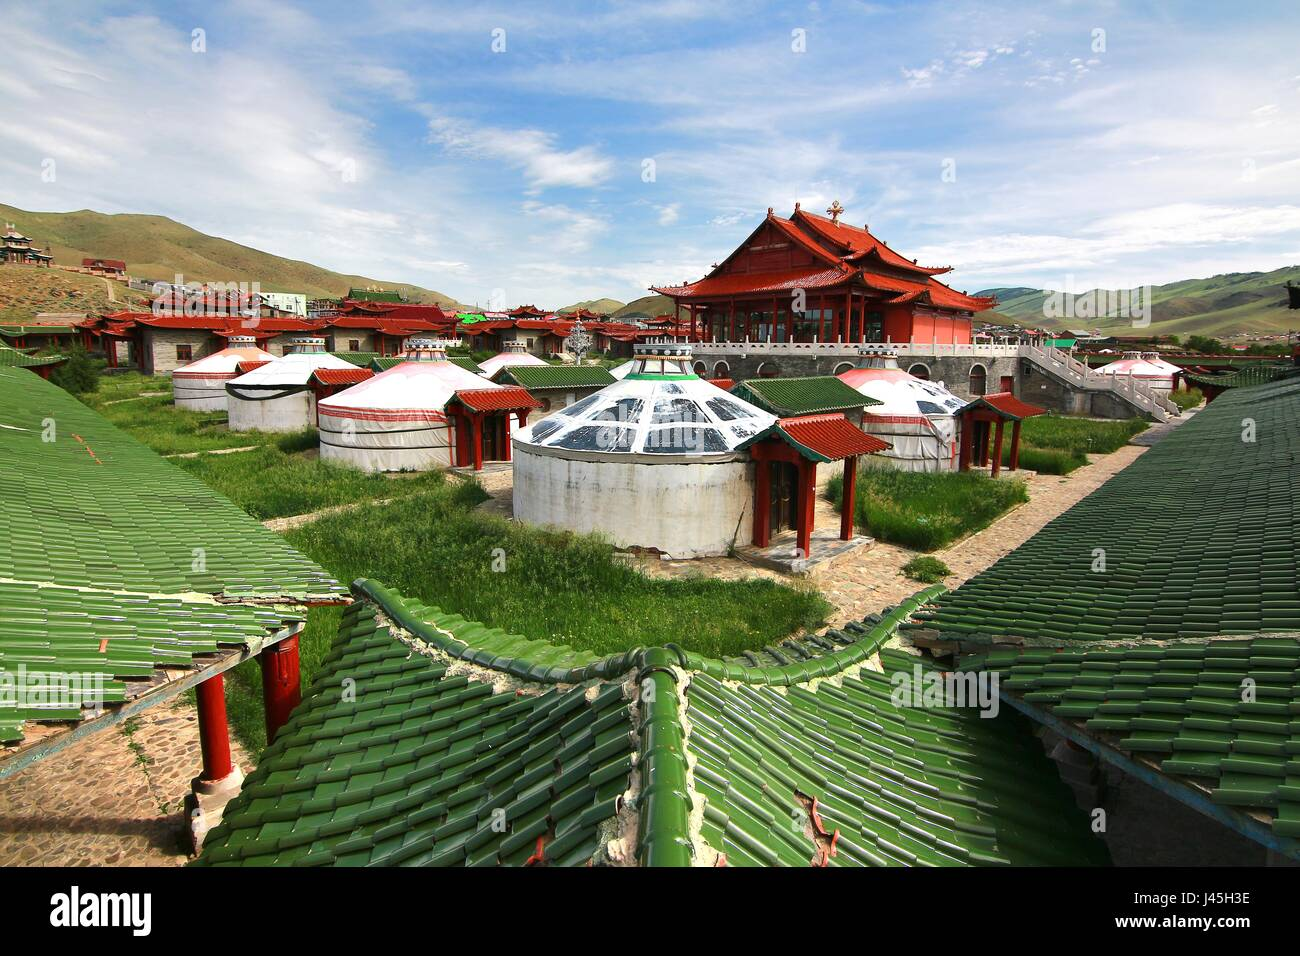 The ger camp at Ulaanbaatar , Mongolia - Stock Image